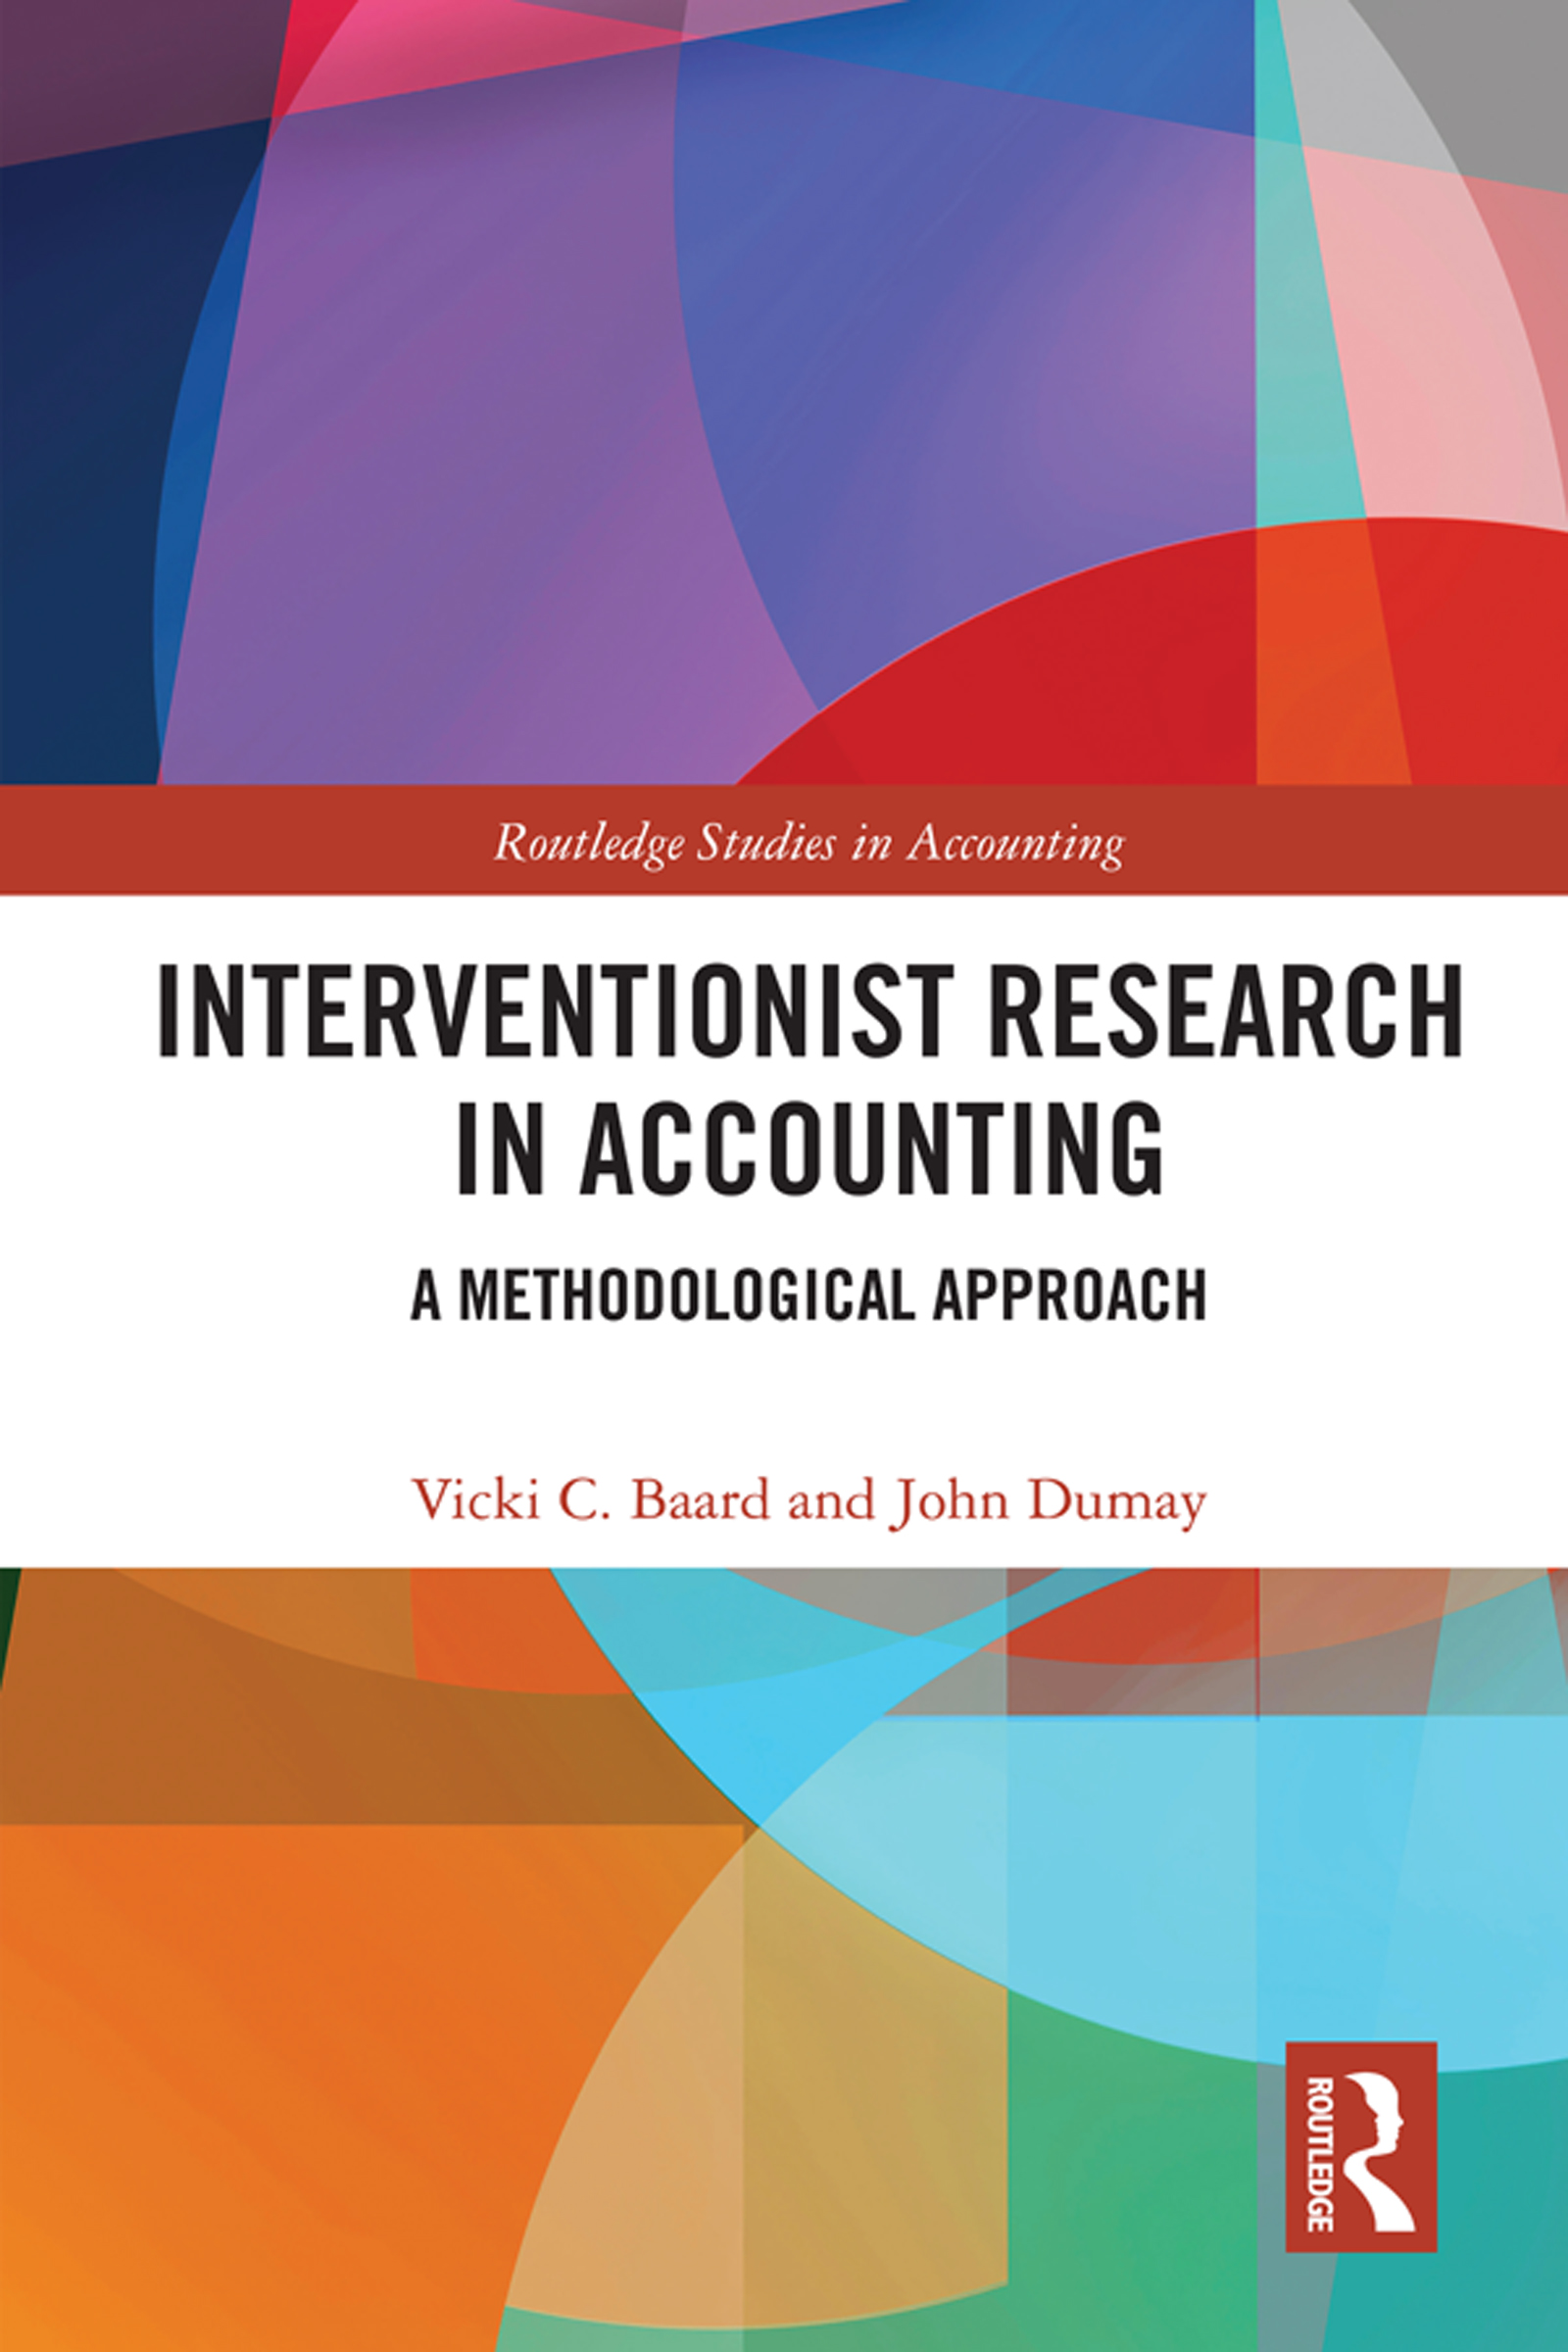 Interventionist Research in Accounting